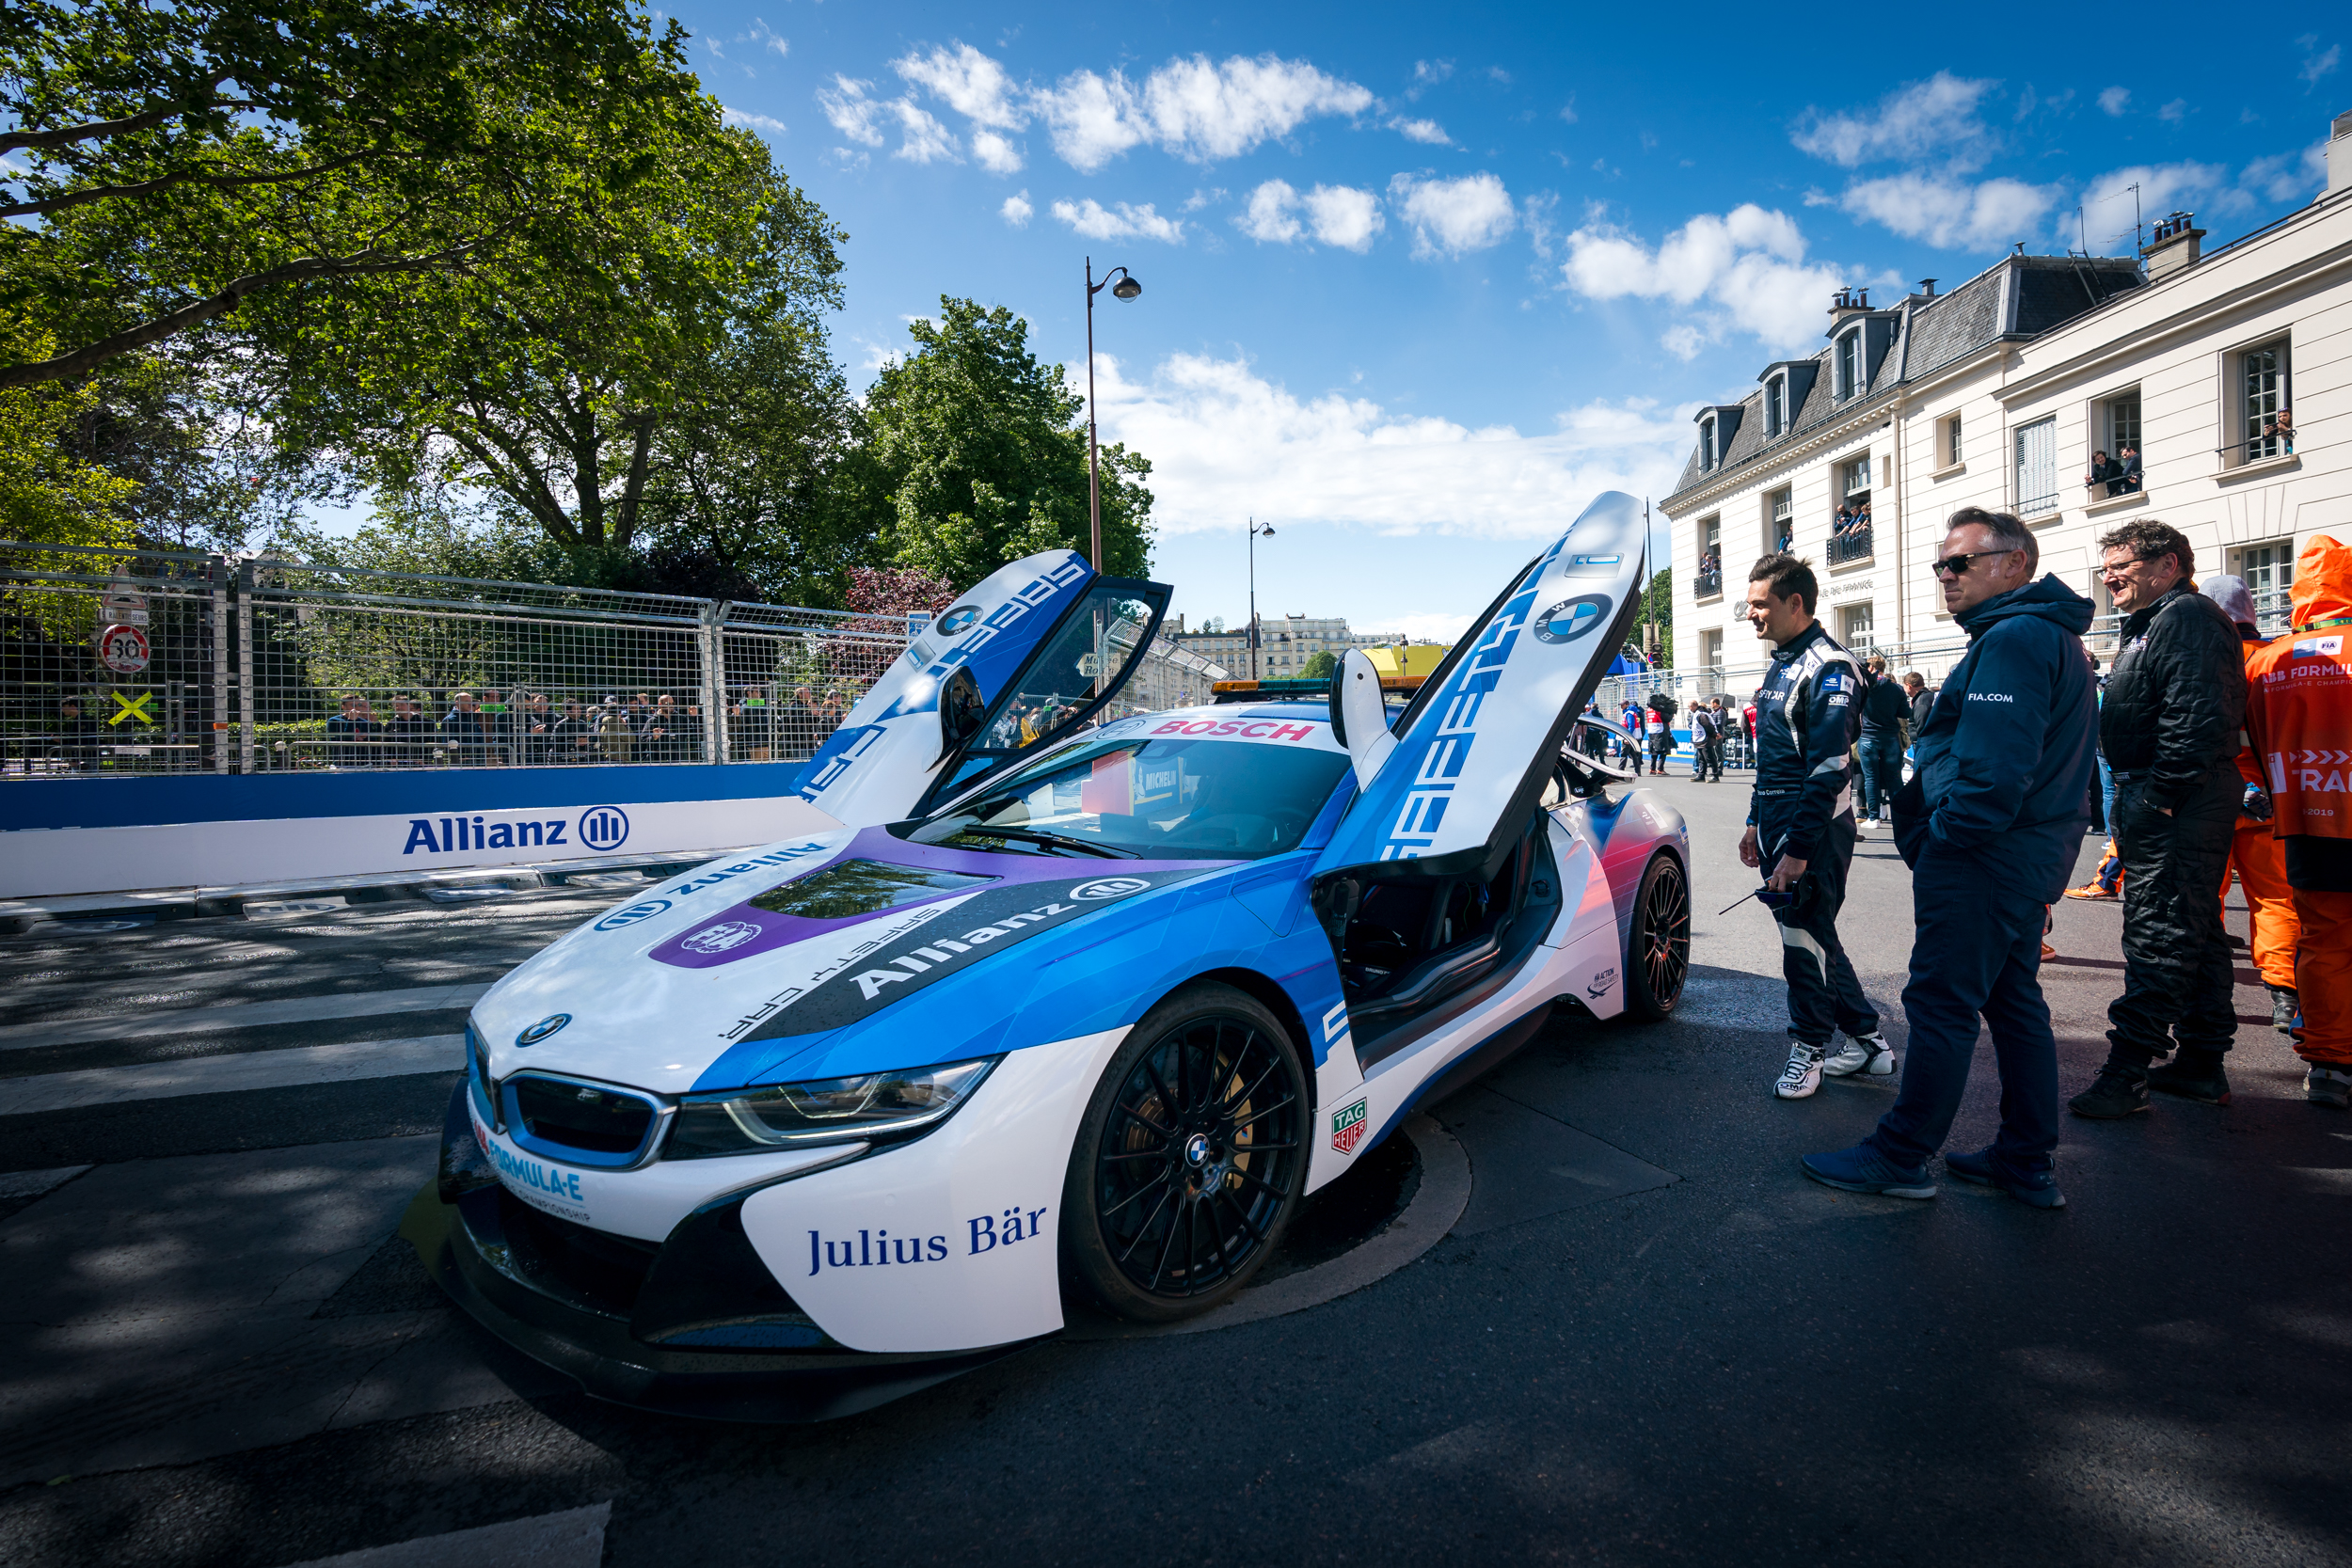 BMW i_Formula E Paris 2019_26&27-04-19_Florian Leger_SHARE & DARE_HD_N°-331.jpg